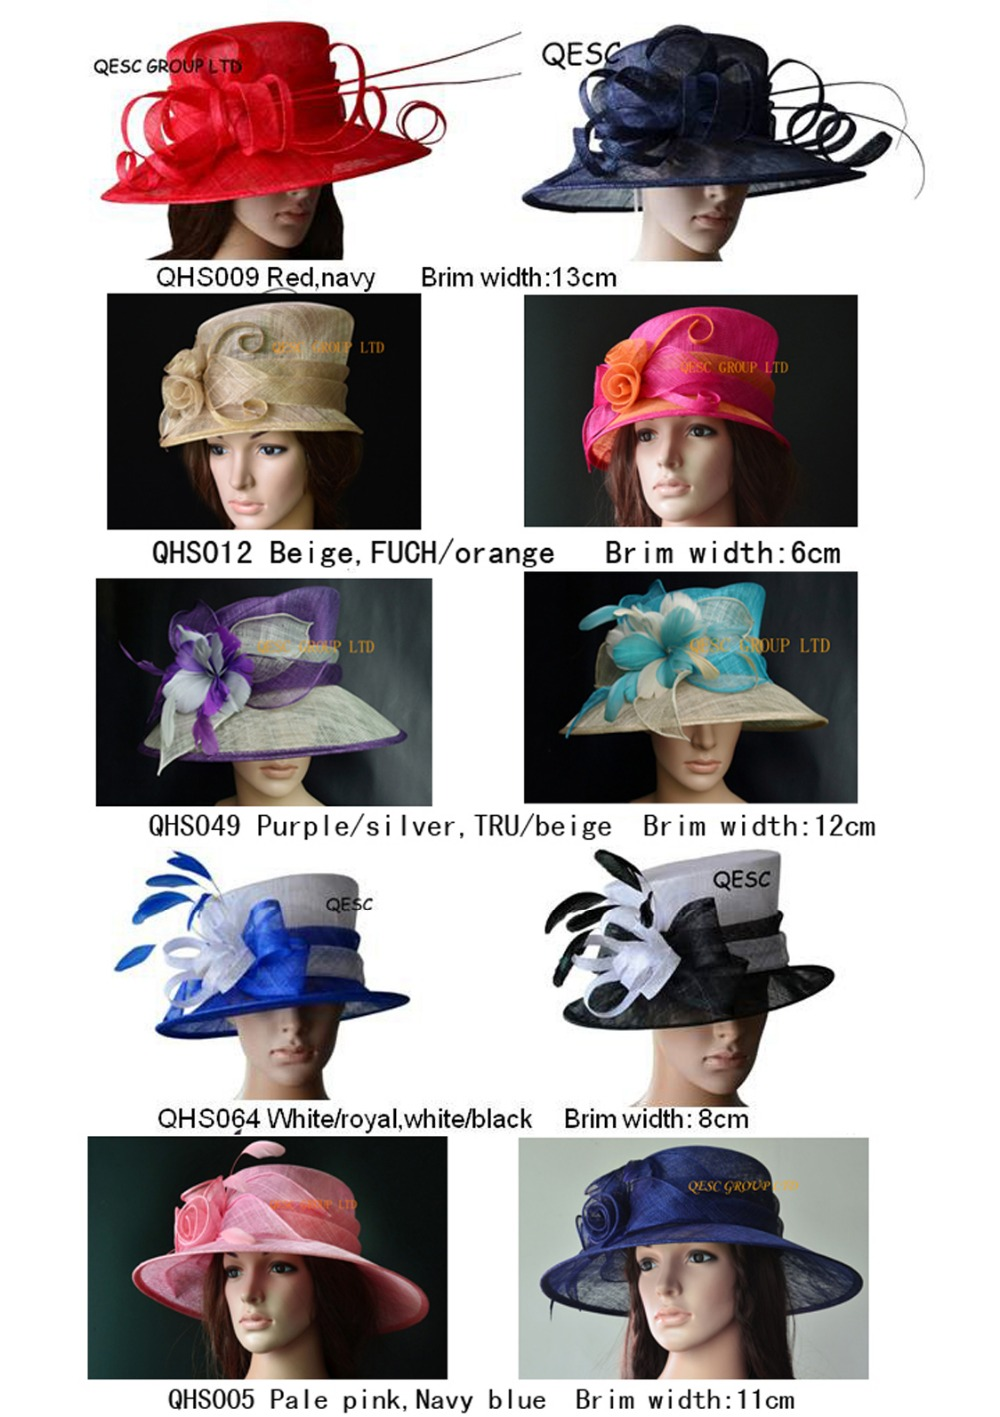 Wide Brim Hot Dress Sinamay Hats Organza hat sell in mix styles,church wedding races.FREE SHIPPING BY EMS,10pcs/lot(China (Mainland))